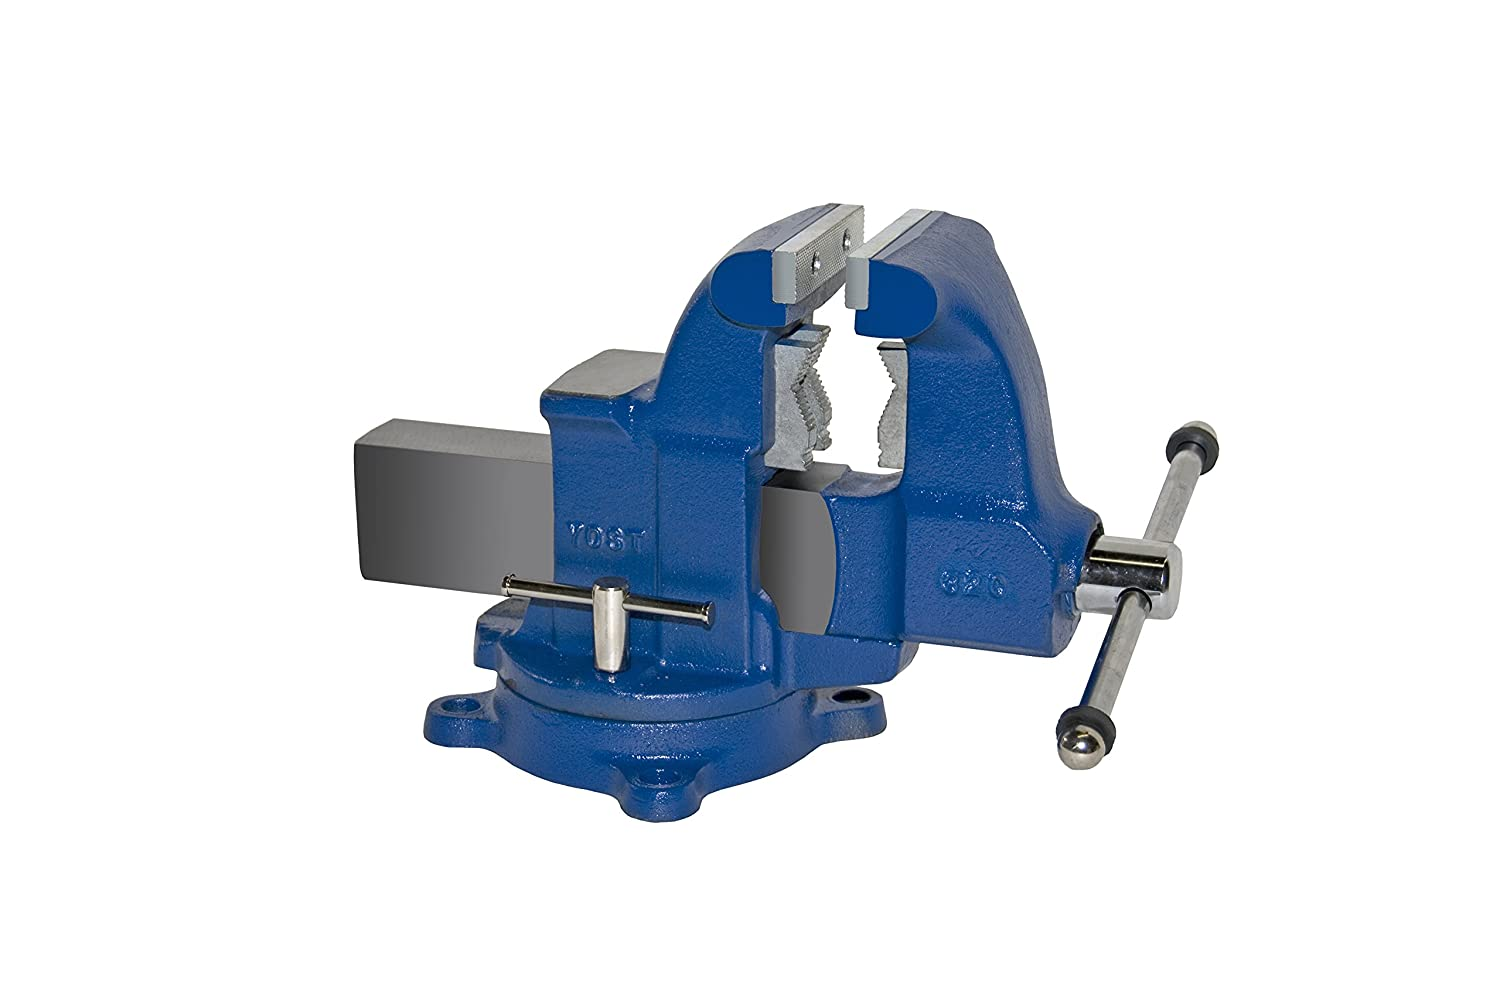 Yost Vises 34C 6 Combination Pipe and Bench Vise with 360-Degree Swivel Base